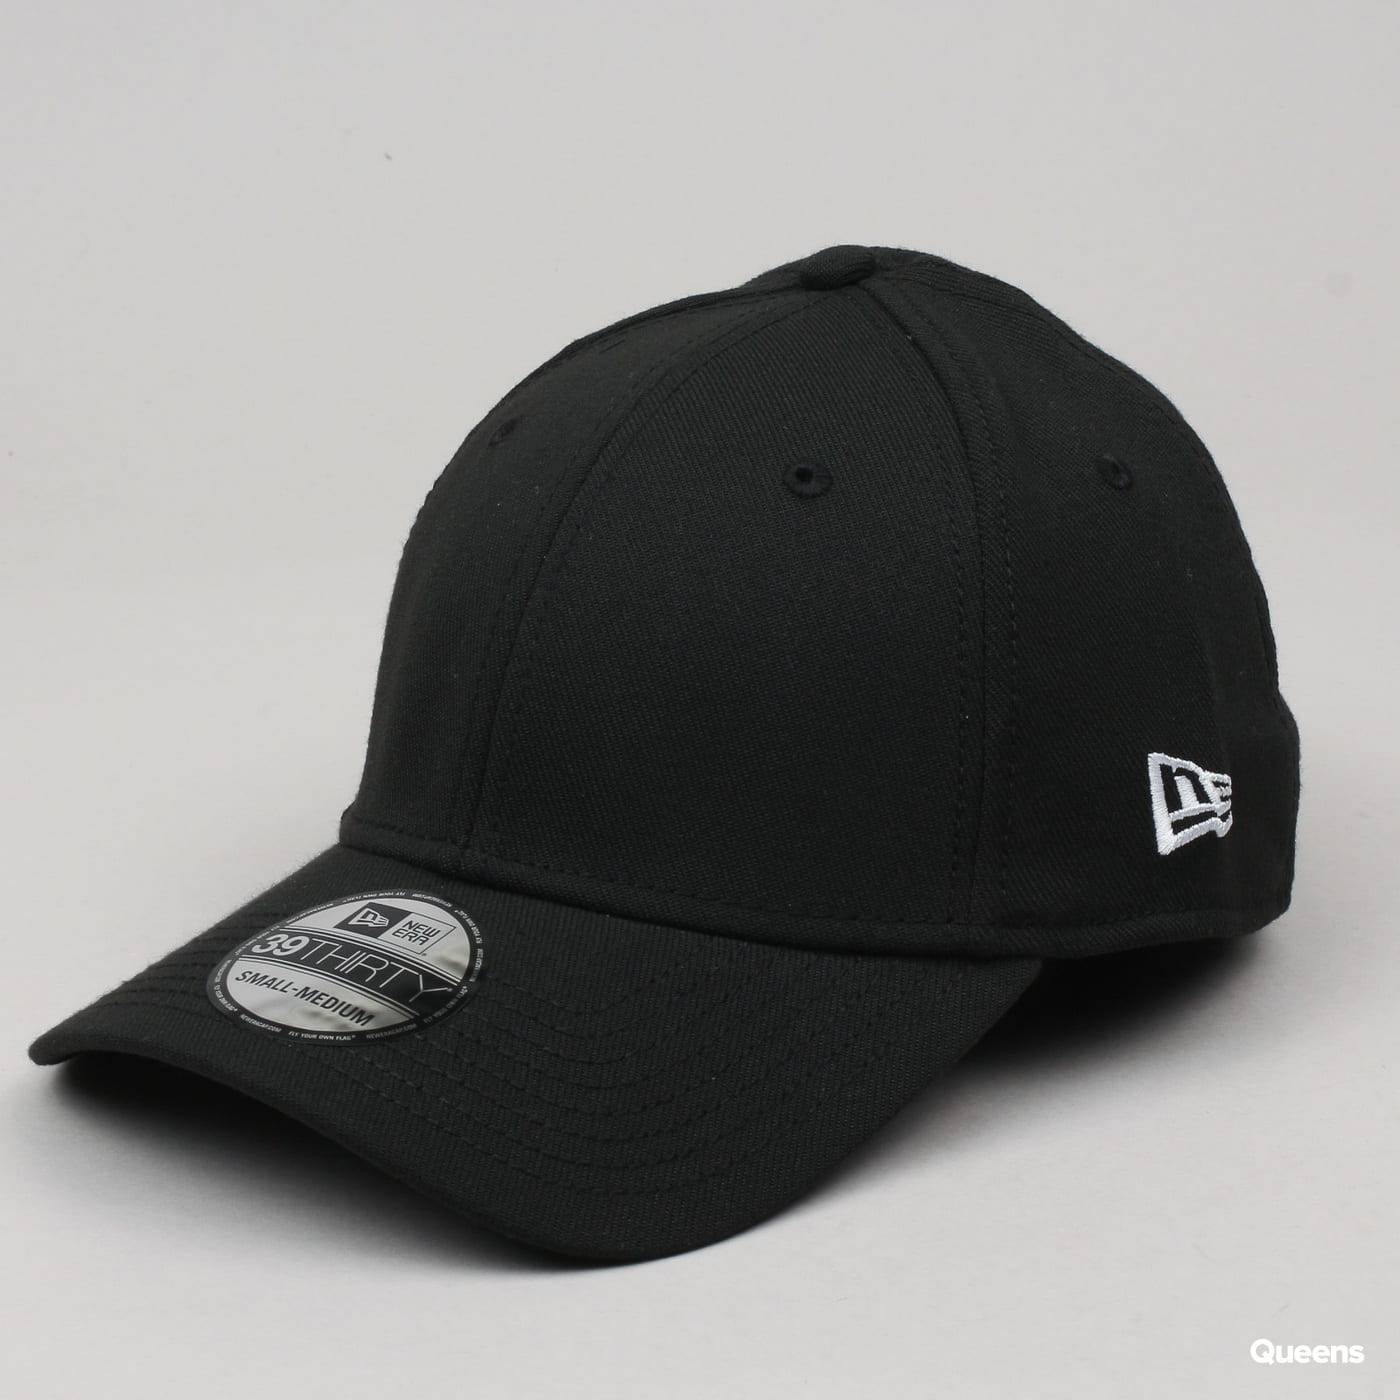 New Era 3930 Flag Collection C/O schwarz